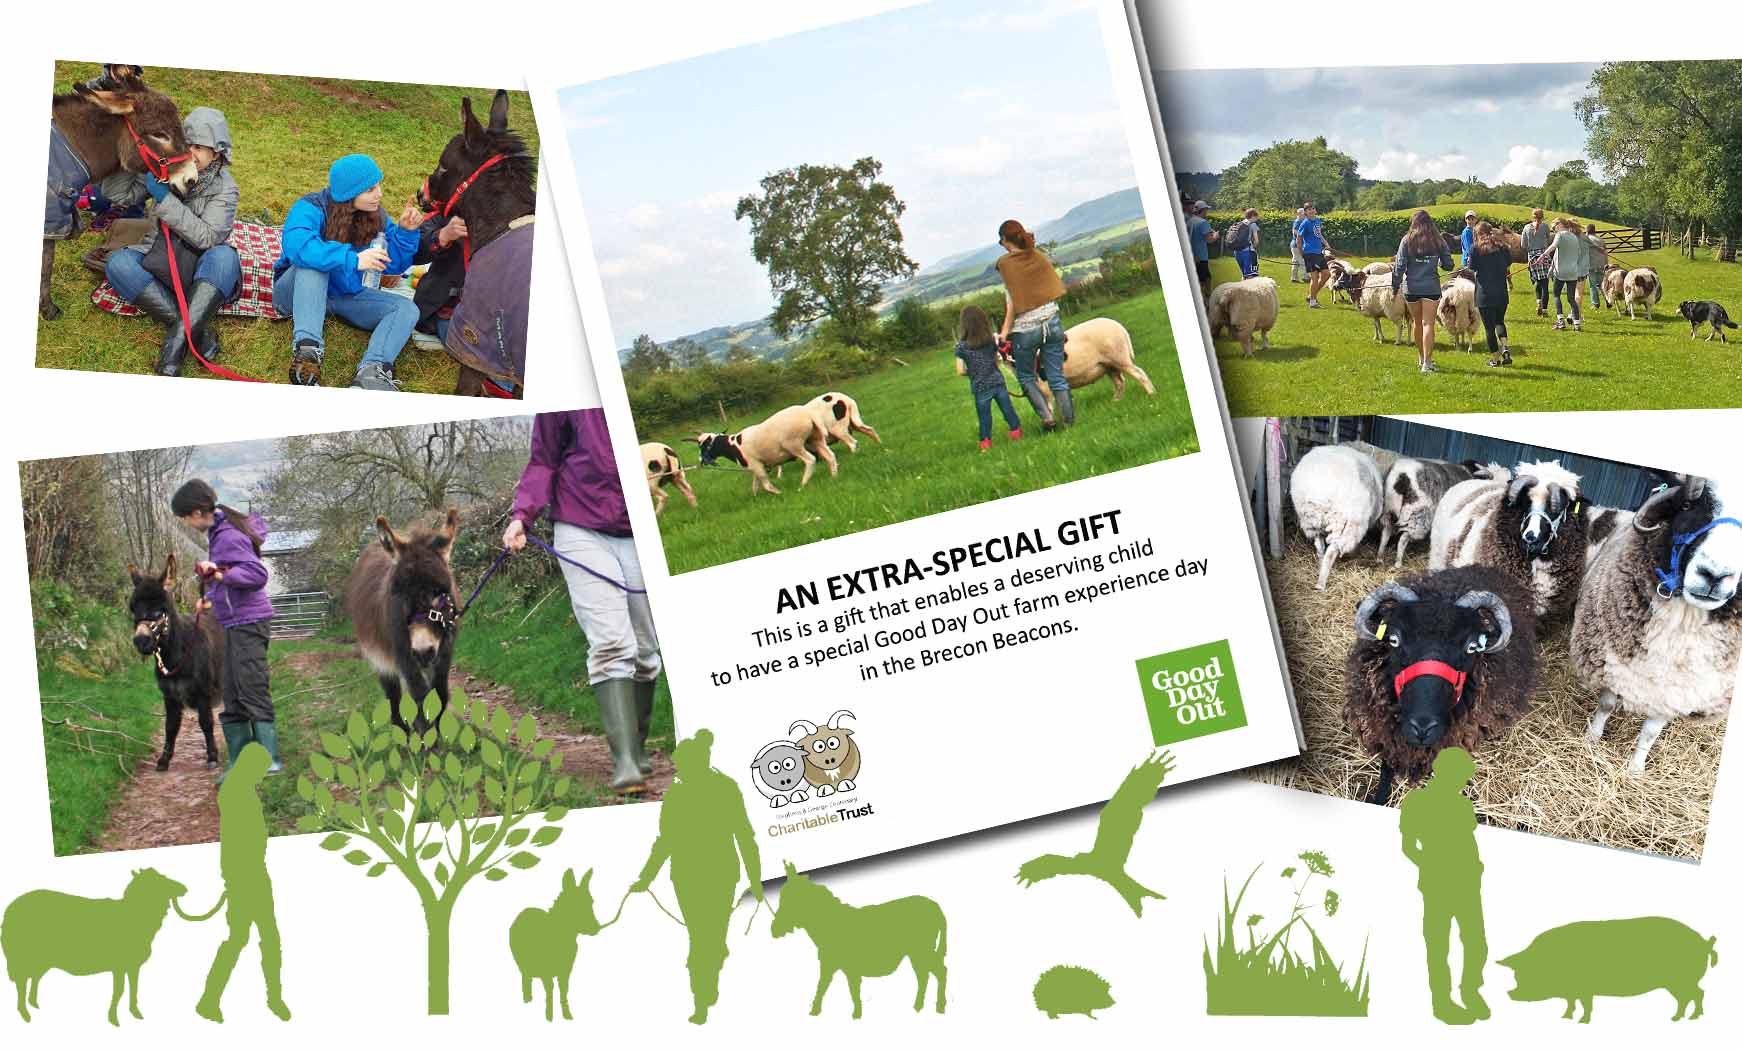 give a deserving child a day in the countryside